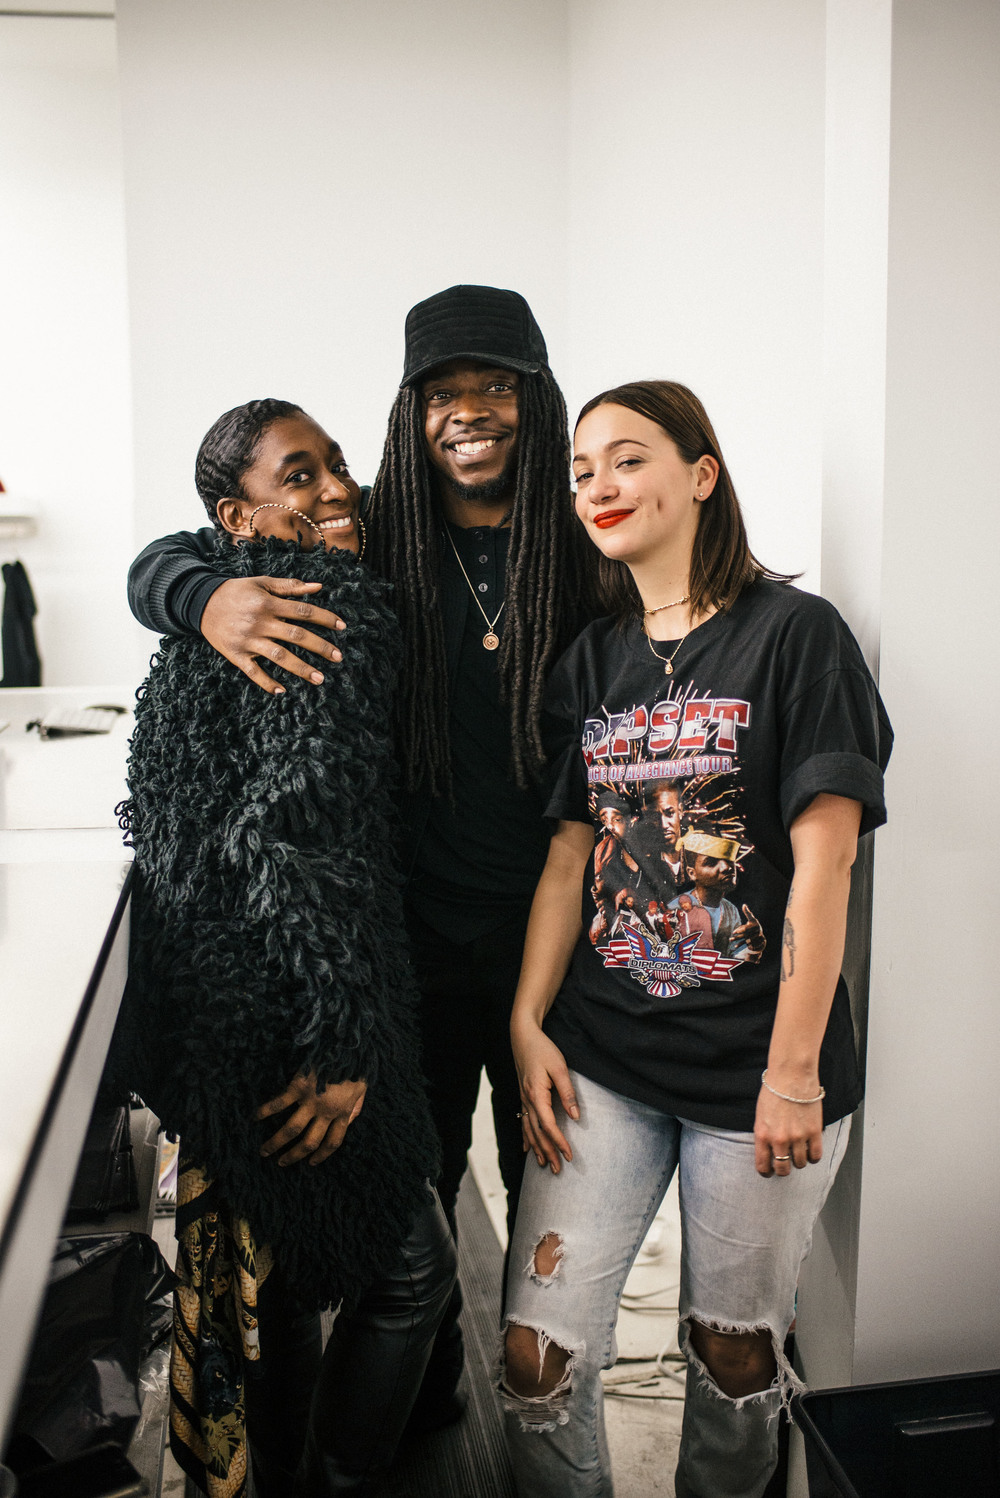 Sandalboyz Launch at Dope Fairfax (Jan 22). Pictured: Charlotte Upshaw, Dell Hopkins, and Bliss Evans. / Photo: © Diane Abapo for SUSPEND Magazine.